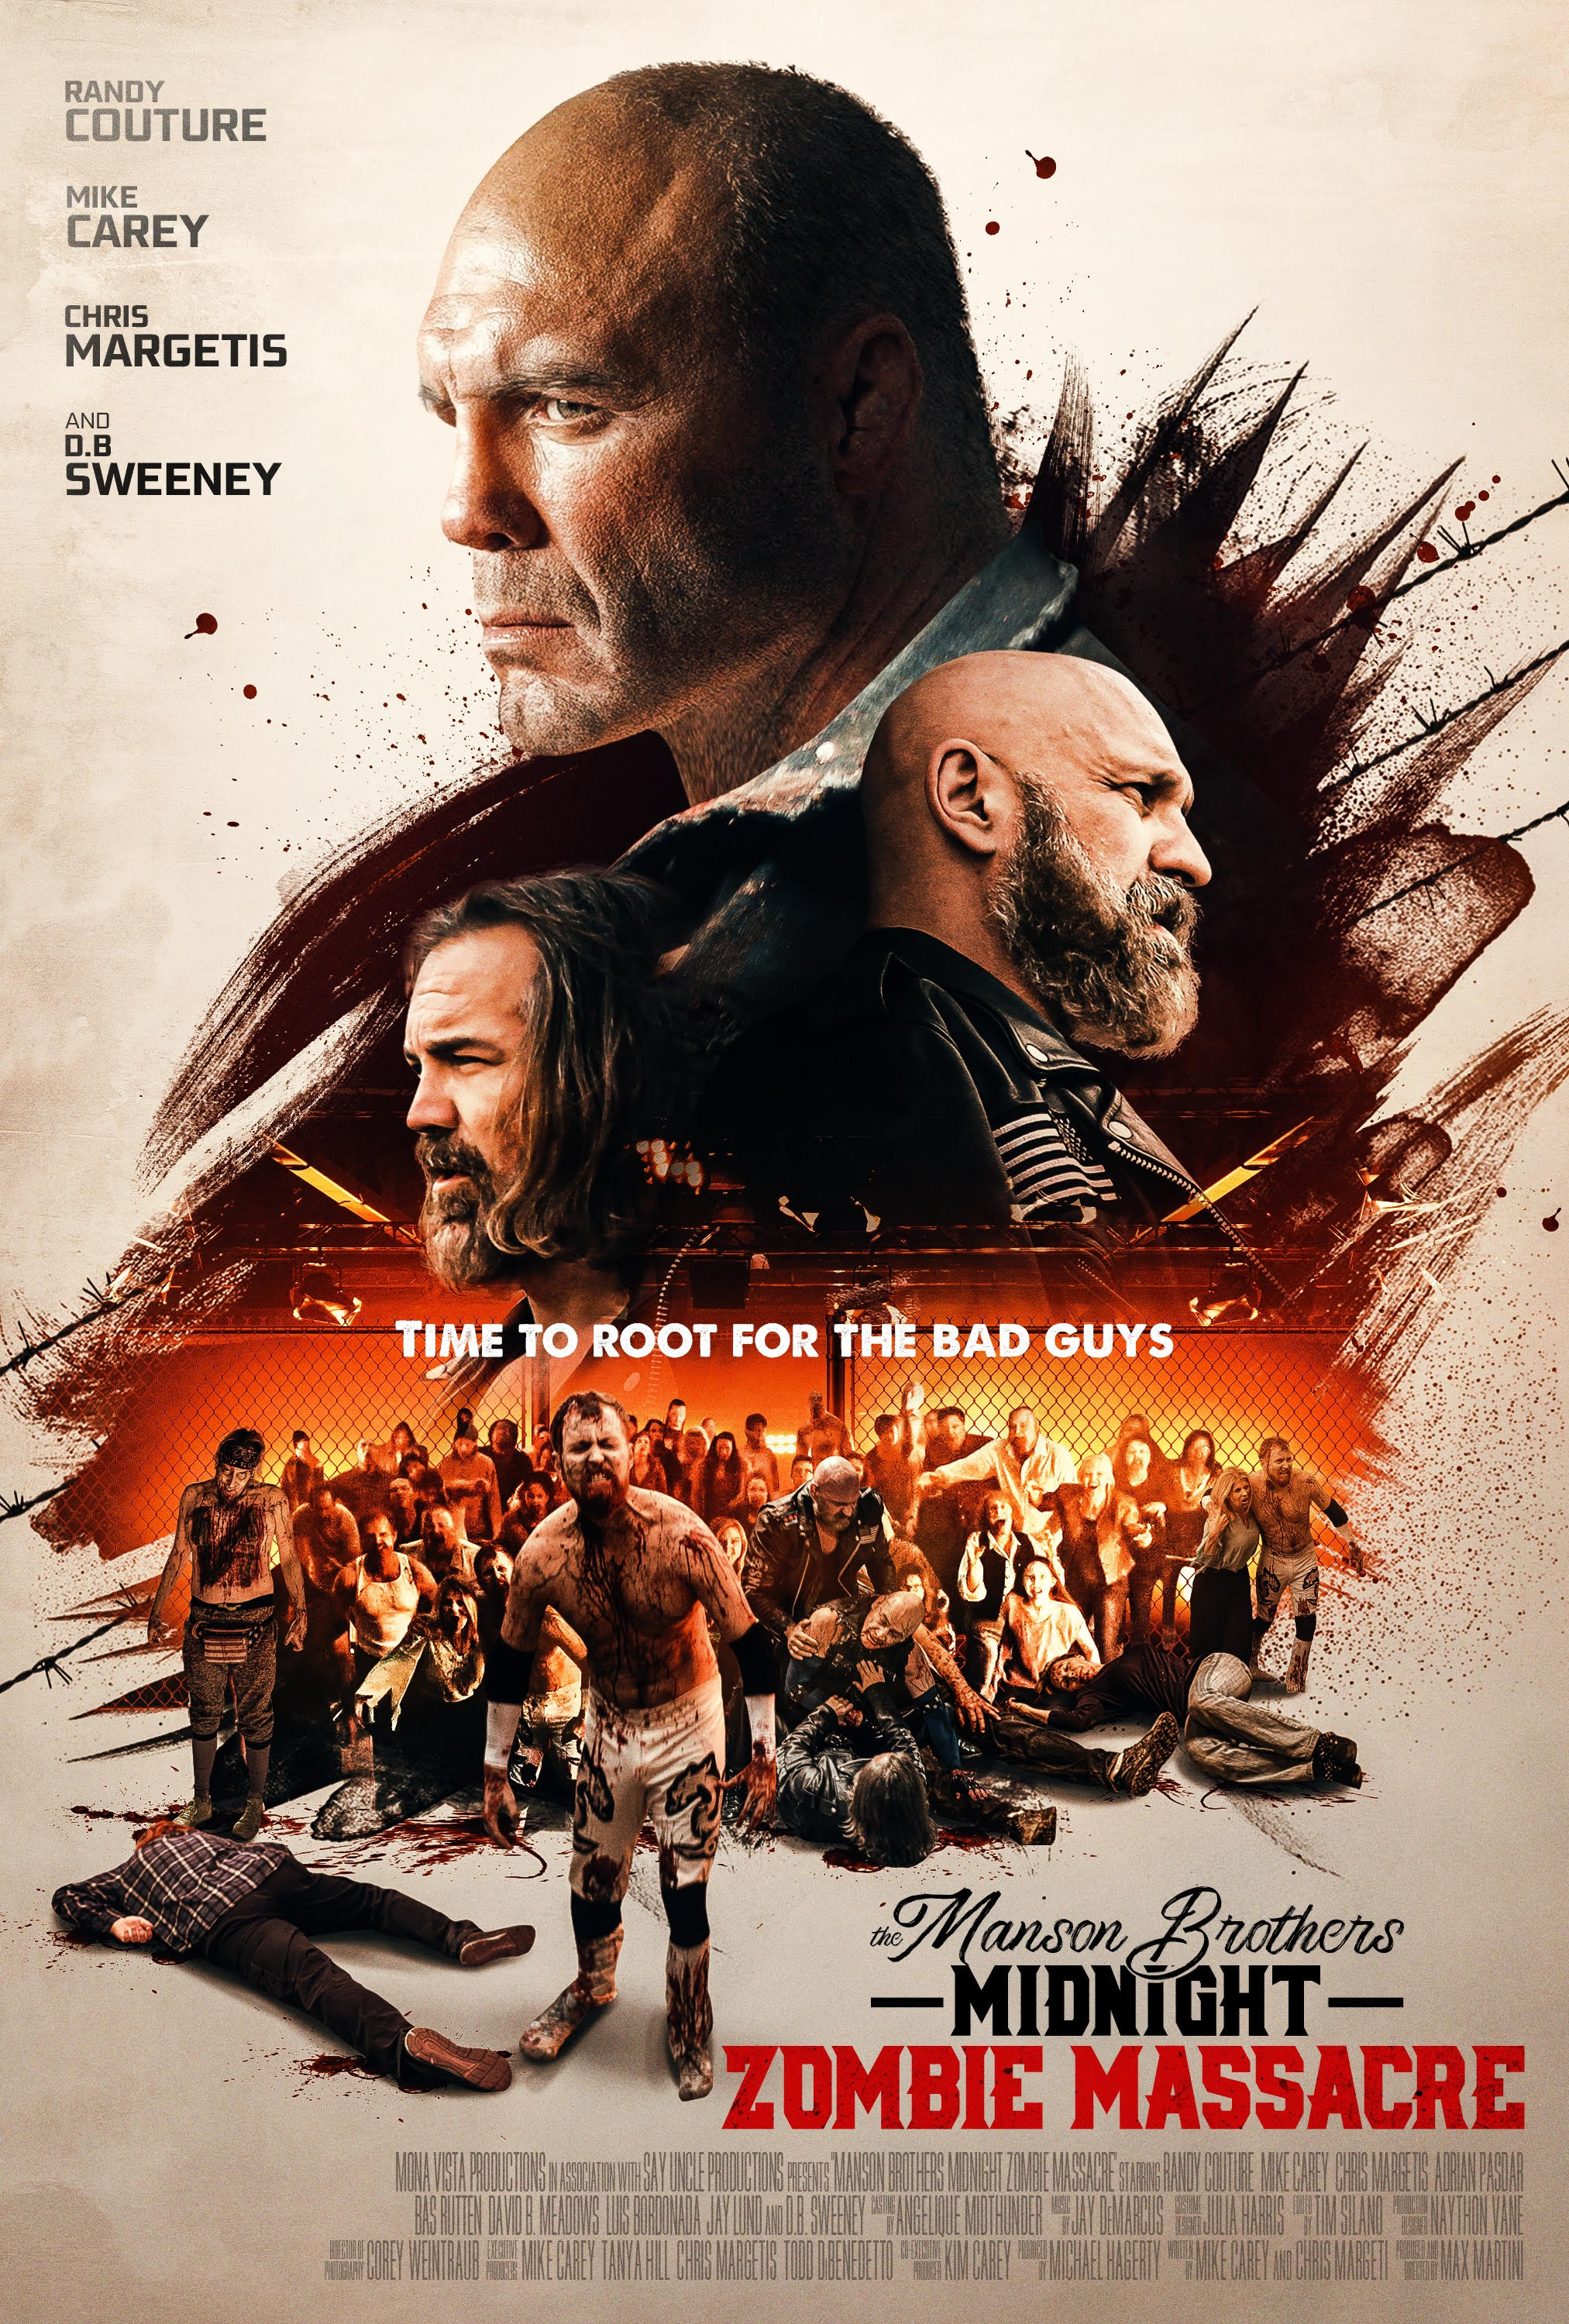 The Manson Brothers Midnight Zombie Massacre (2021) Tamil Dubbed (Voice Over) & English [Dual Audio] WebRip 720p [1XBET]